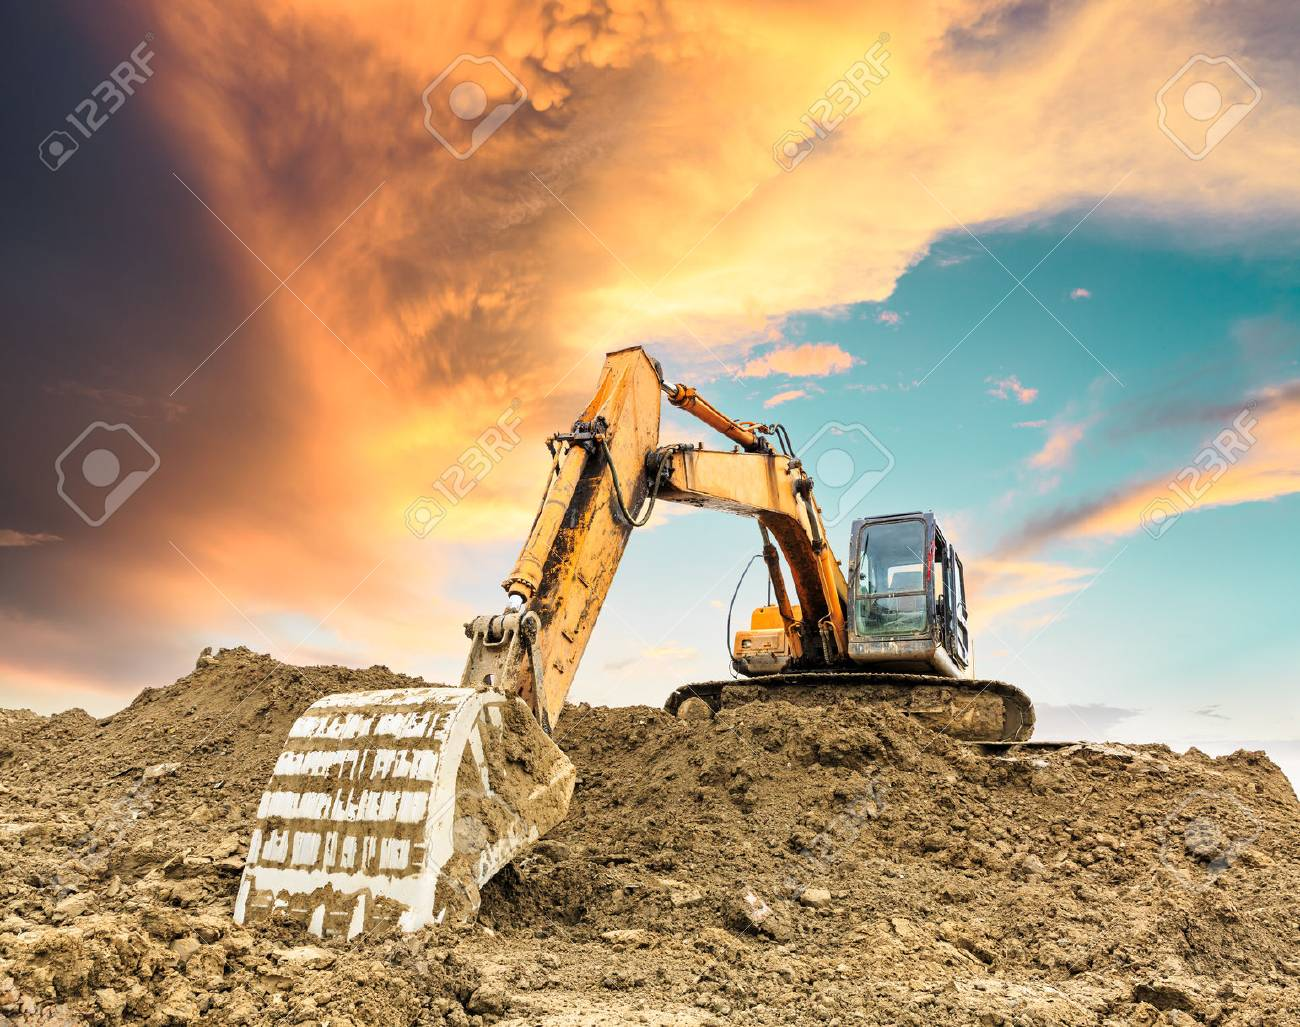 Excavator working at construction site on sunset - 89252891